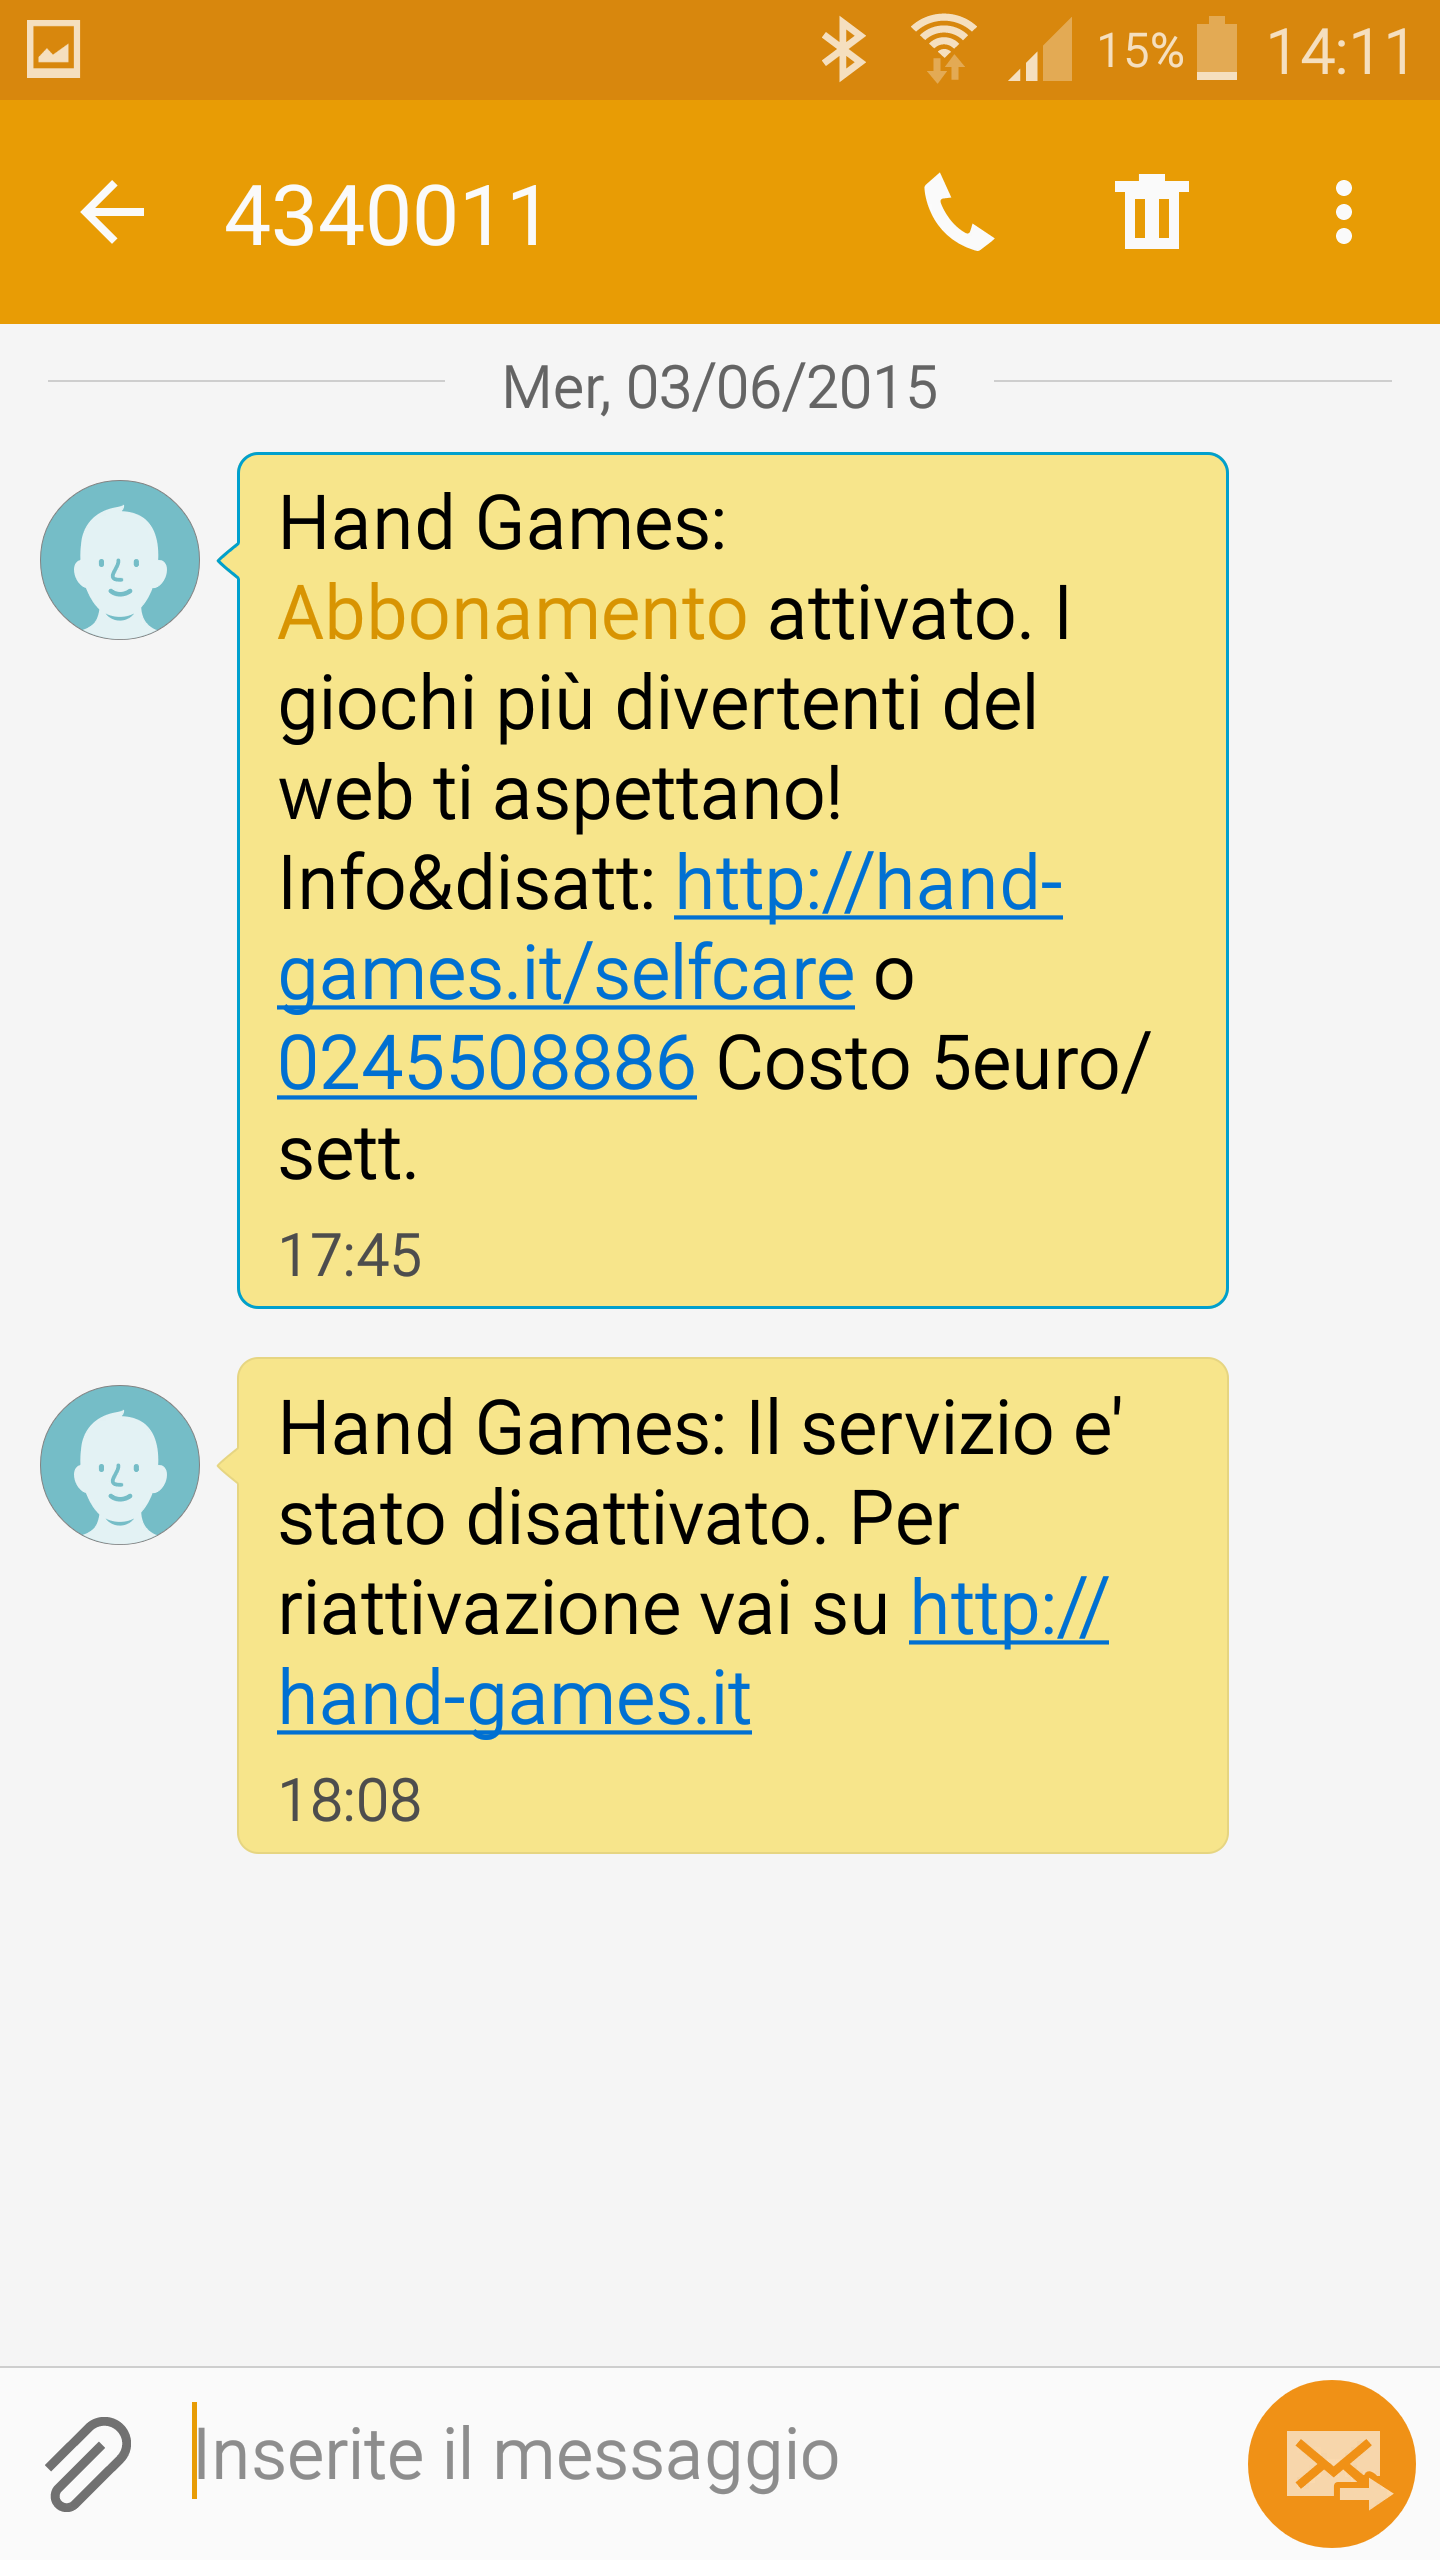 Hand Games, h3g three Italy unrequested subscription, 03/06/2015